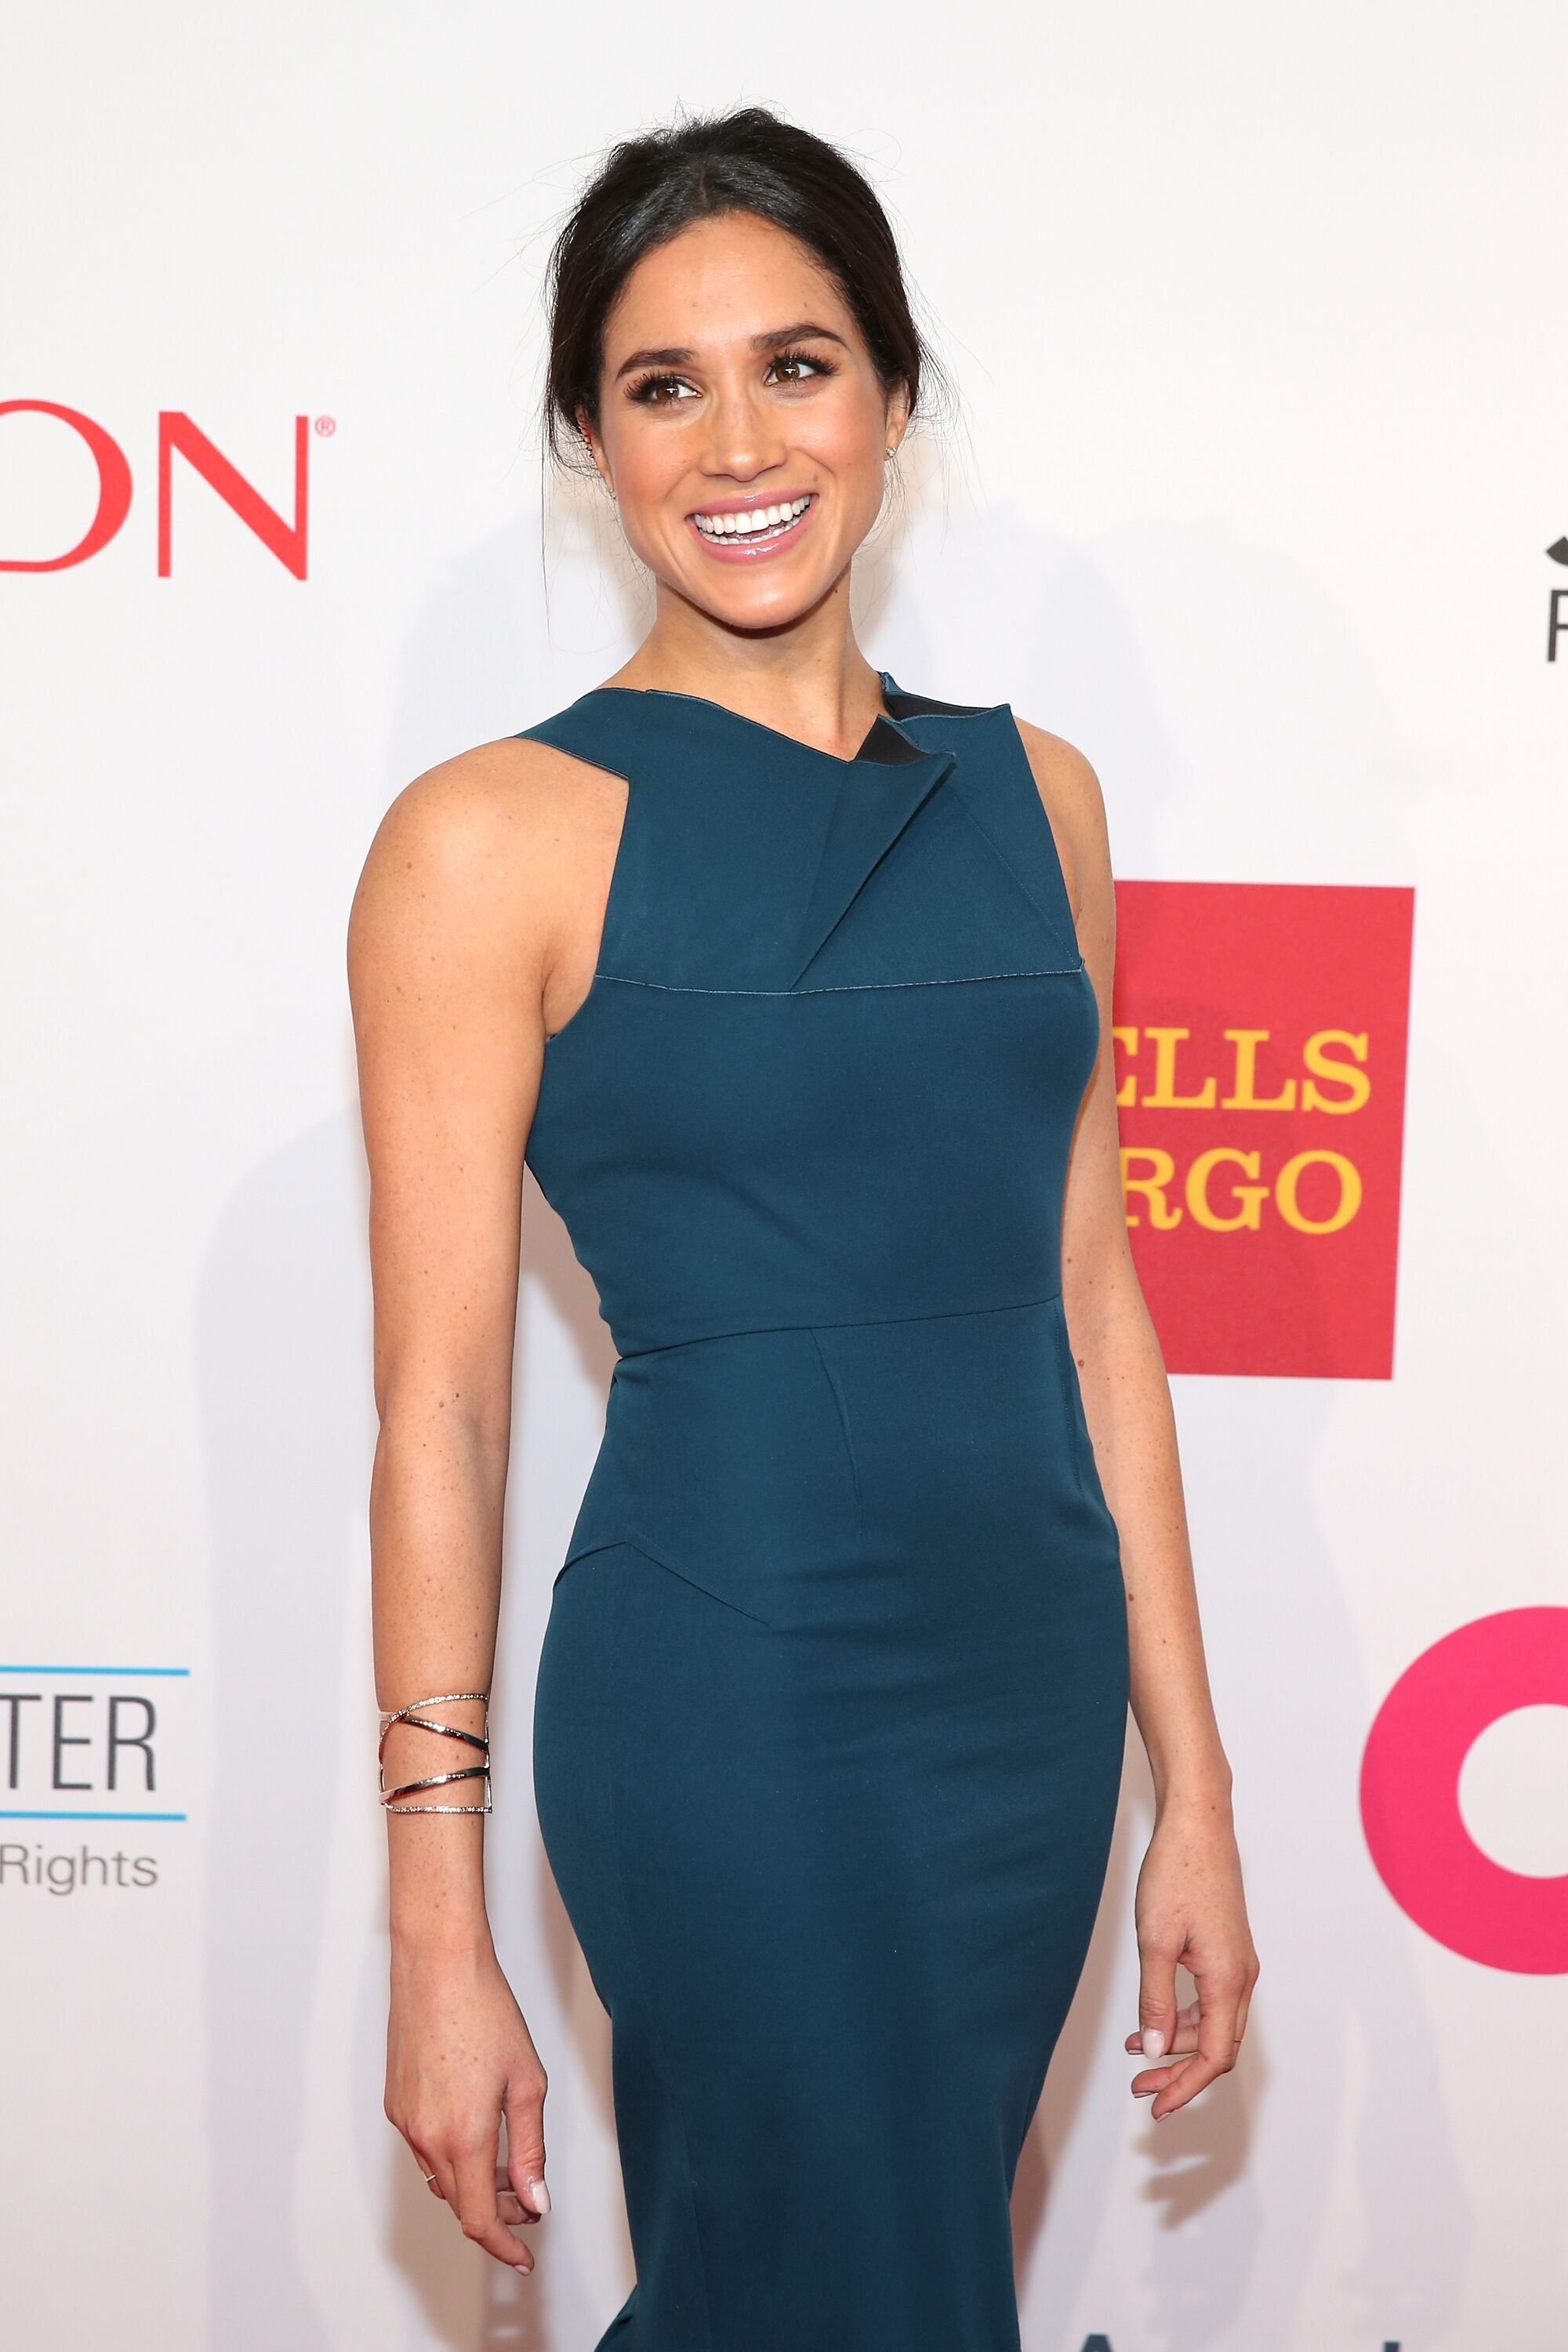 Meghan Markle attends the Elton John AIDS Foundation's 13th Annual An Enduring Vision Benefit at Cipriani Wall Street powered by CIROC Vodka on October 28, 2014 in New York City. | Source: Getty Images